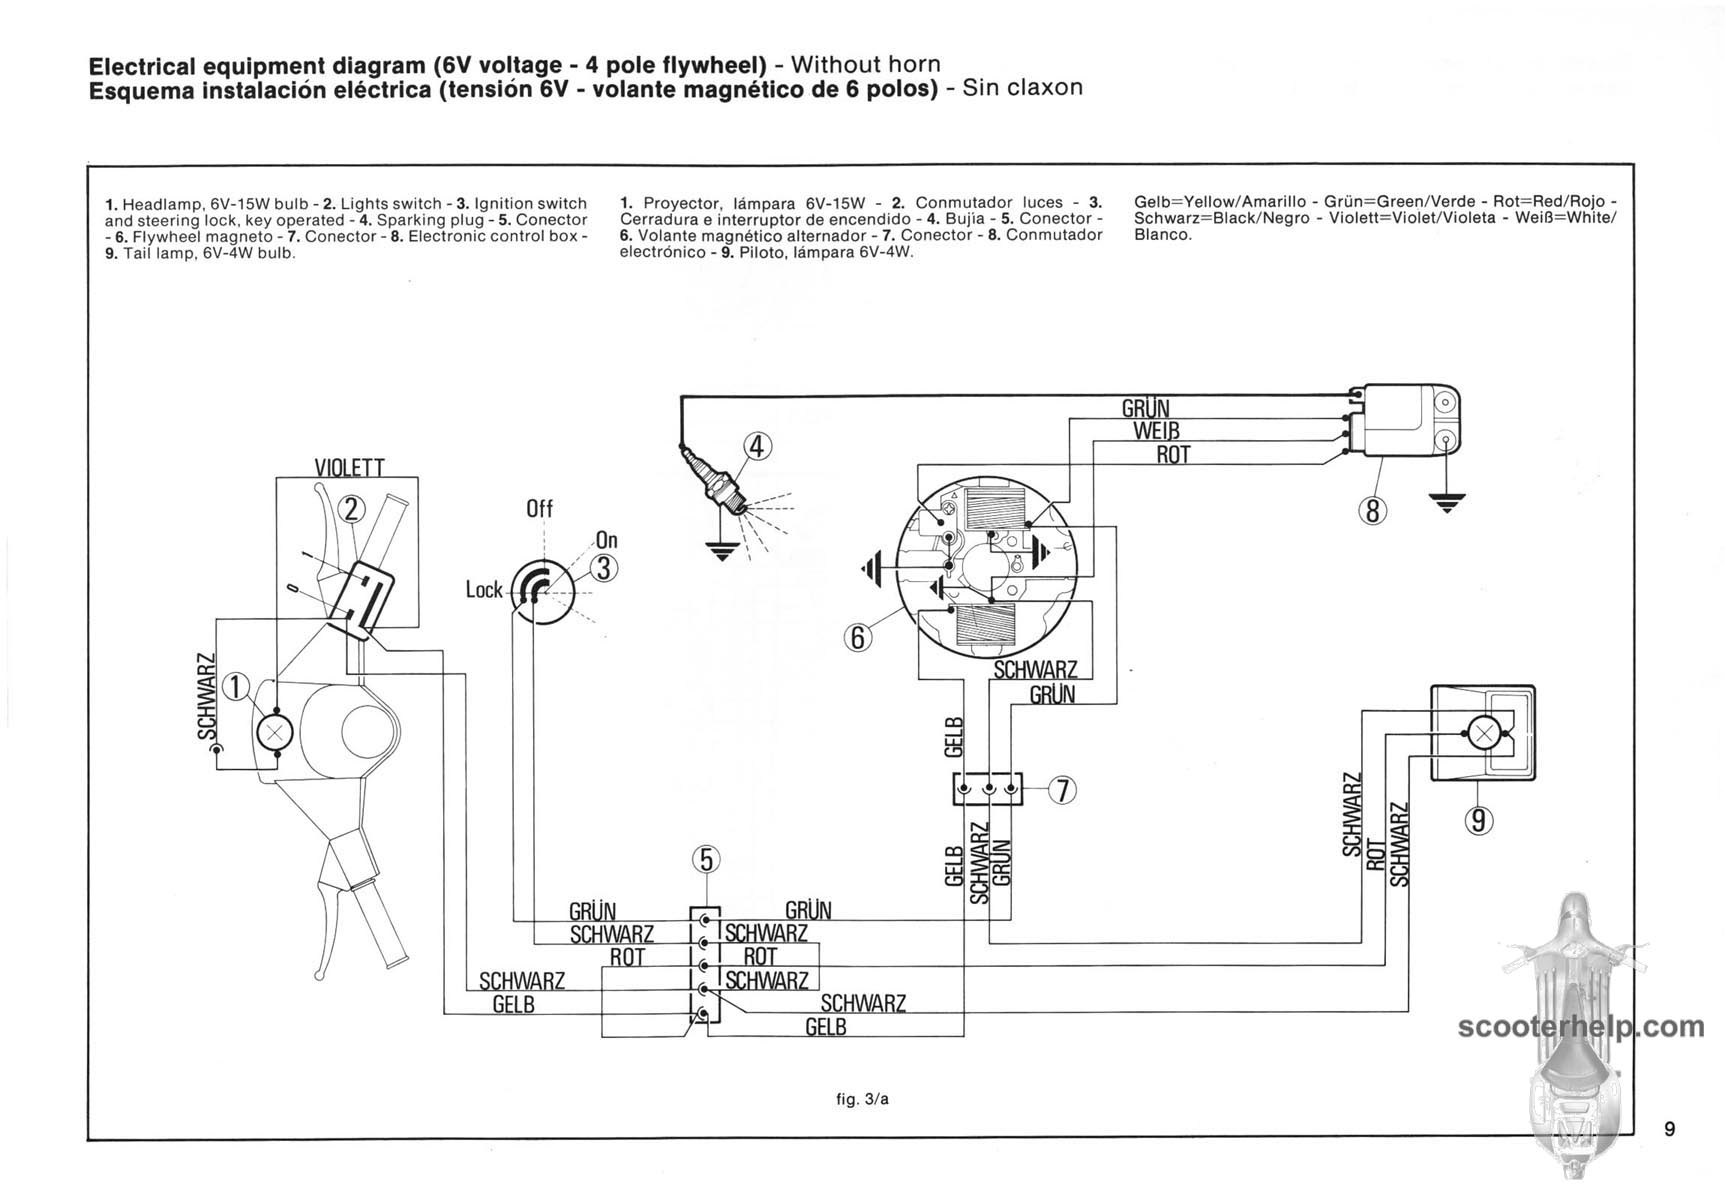 09 pk factory repair manual vespa p125x wiring diagram at nearapp.co